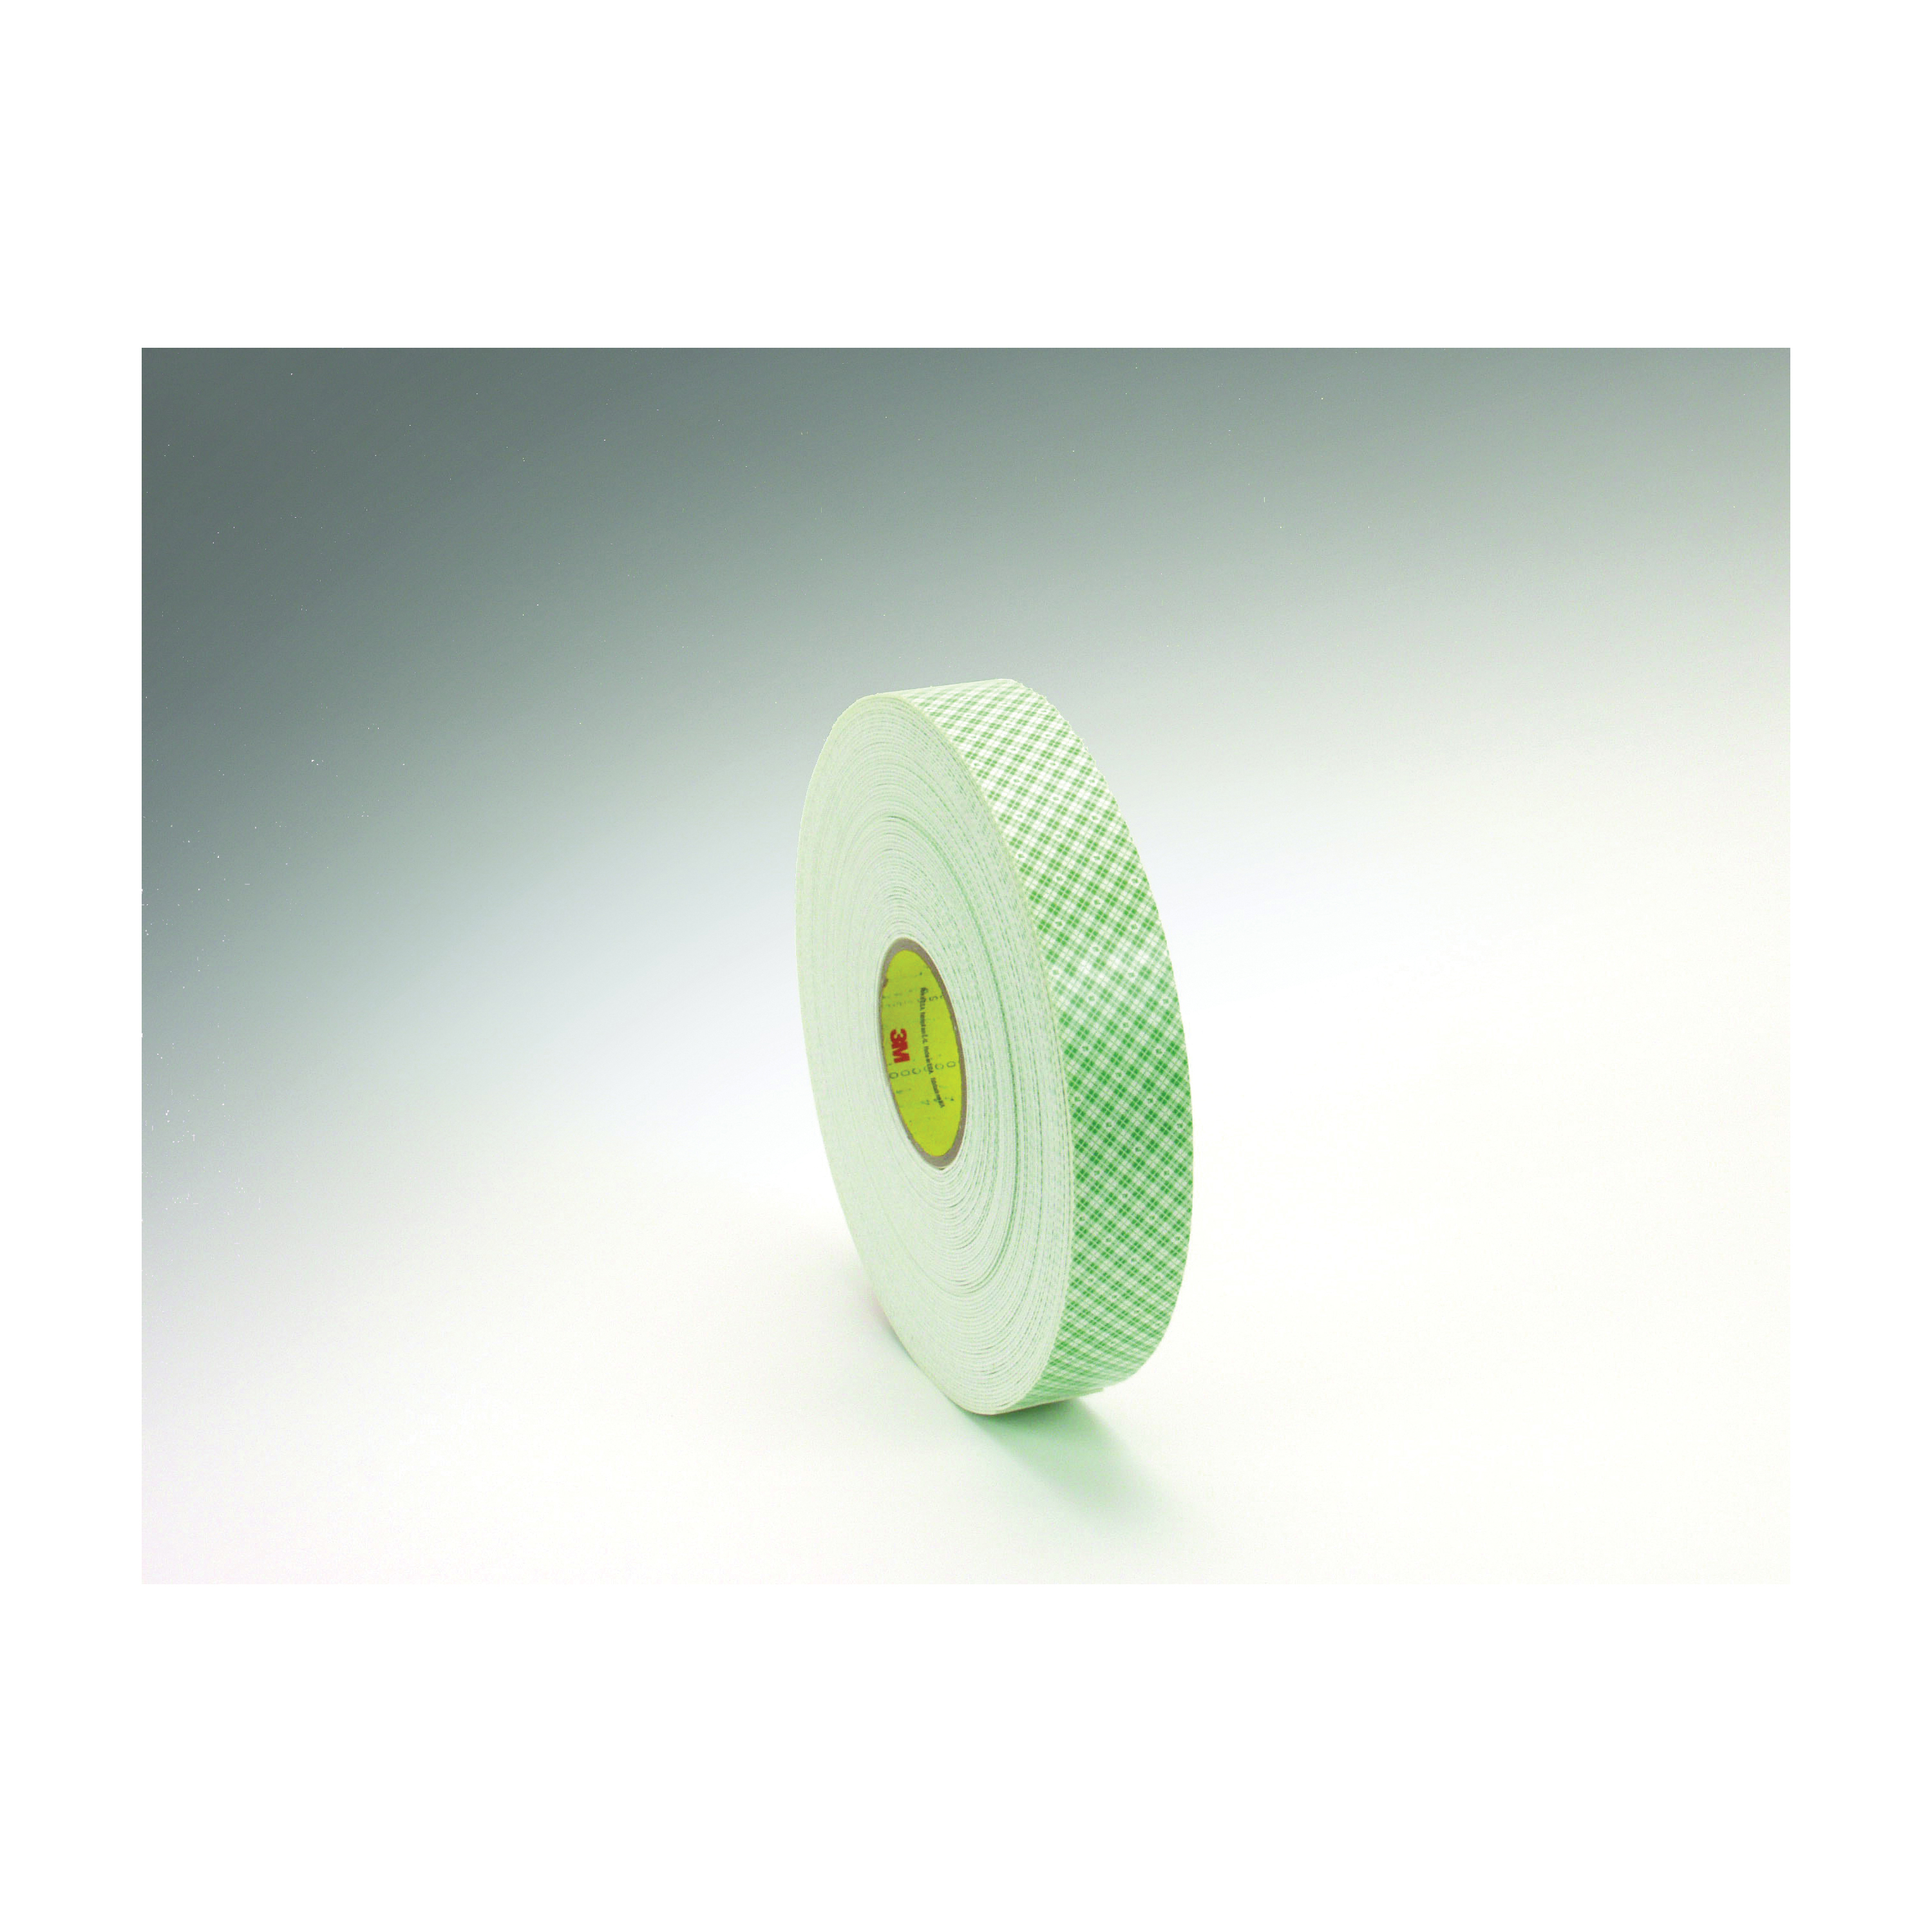 3M™ 021200-03371 Double Coated Tape, 36 yd L x 1/4 in W, 62 mil THK, Acrylic Adhesive, Urethane Foam Backing, Off-White